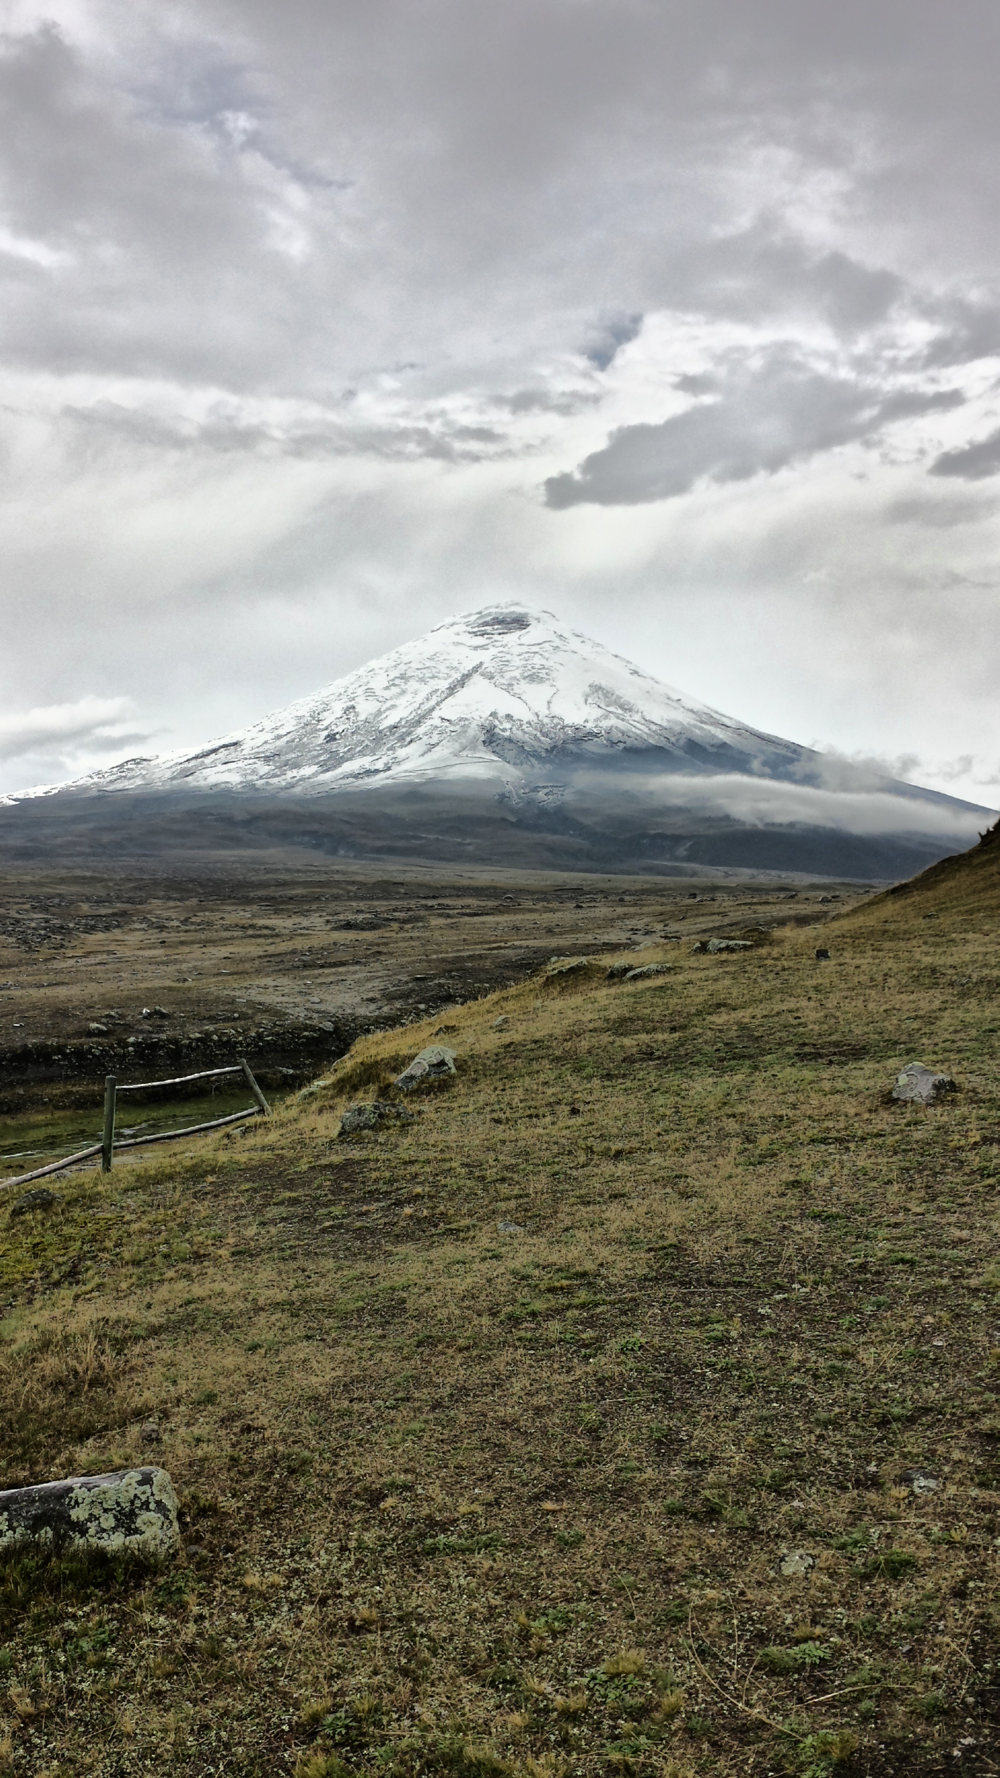 Cotopaxi. (Photo taken by Juan Diaz.)